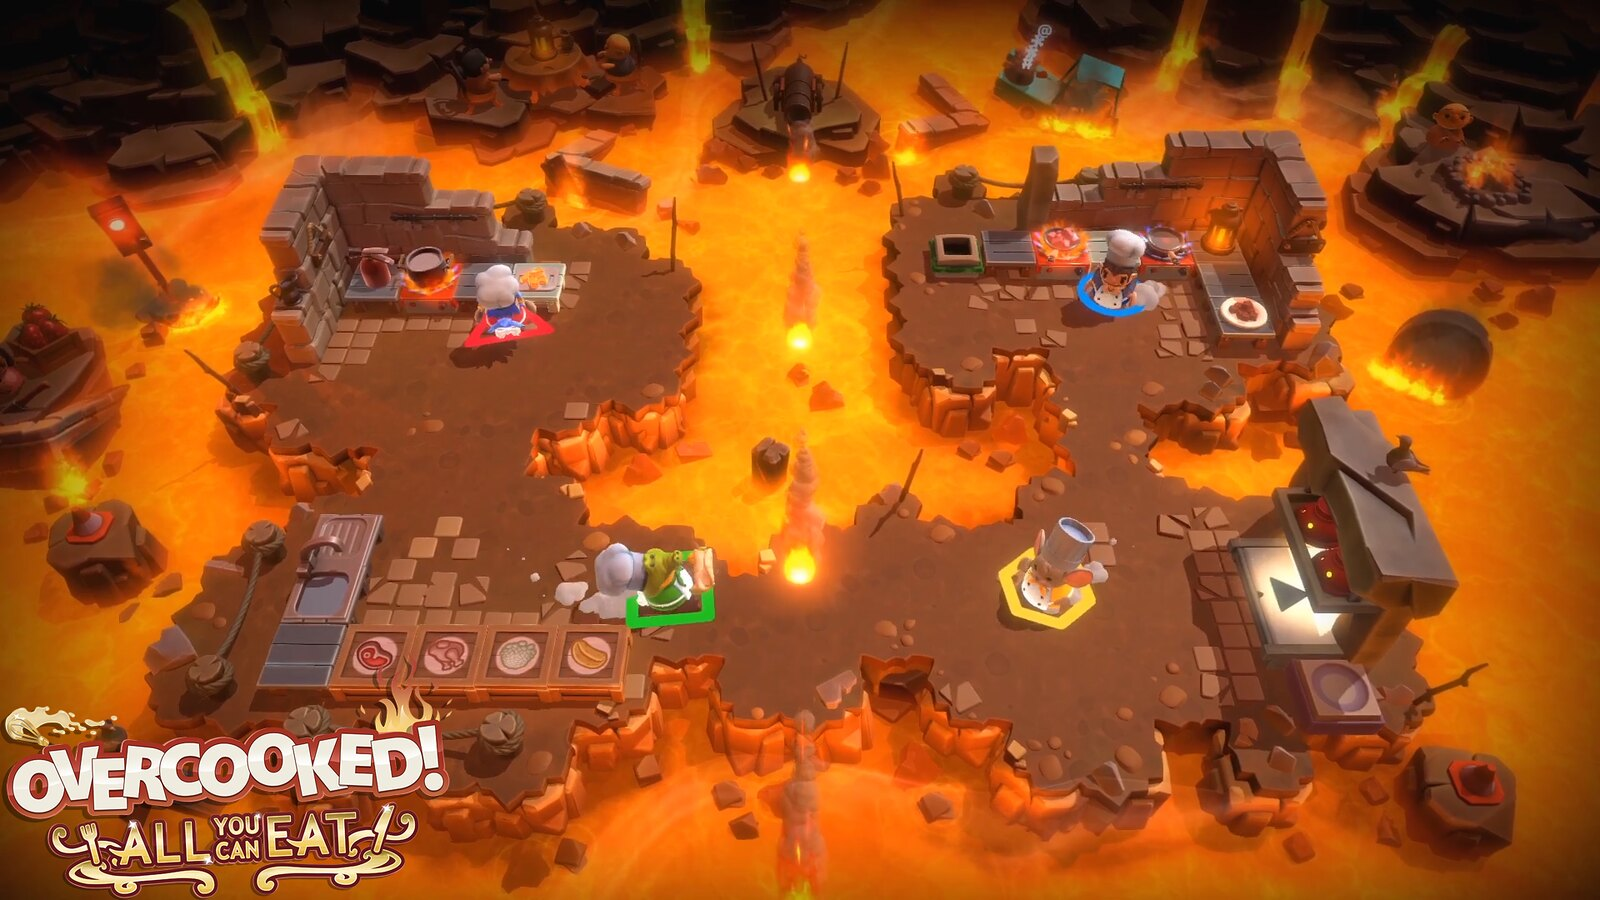 50133646968 84817a146c h - Overcooked! All You Can Eat – ein Augenschmaus für PS5